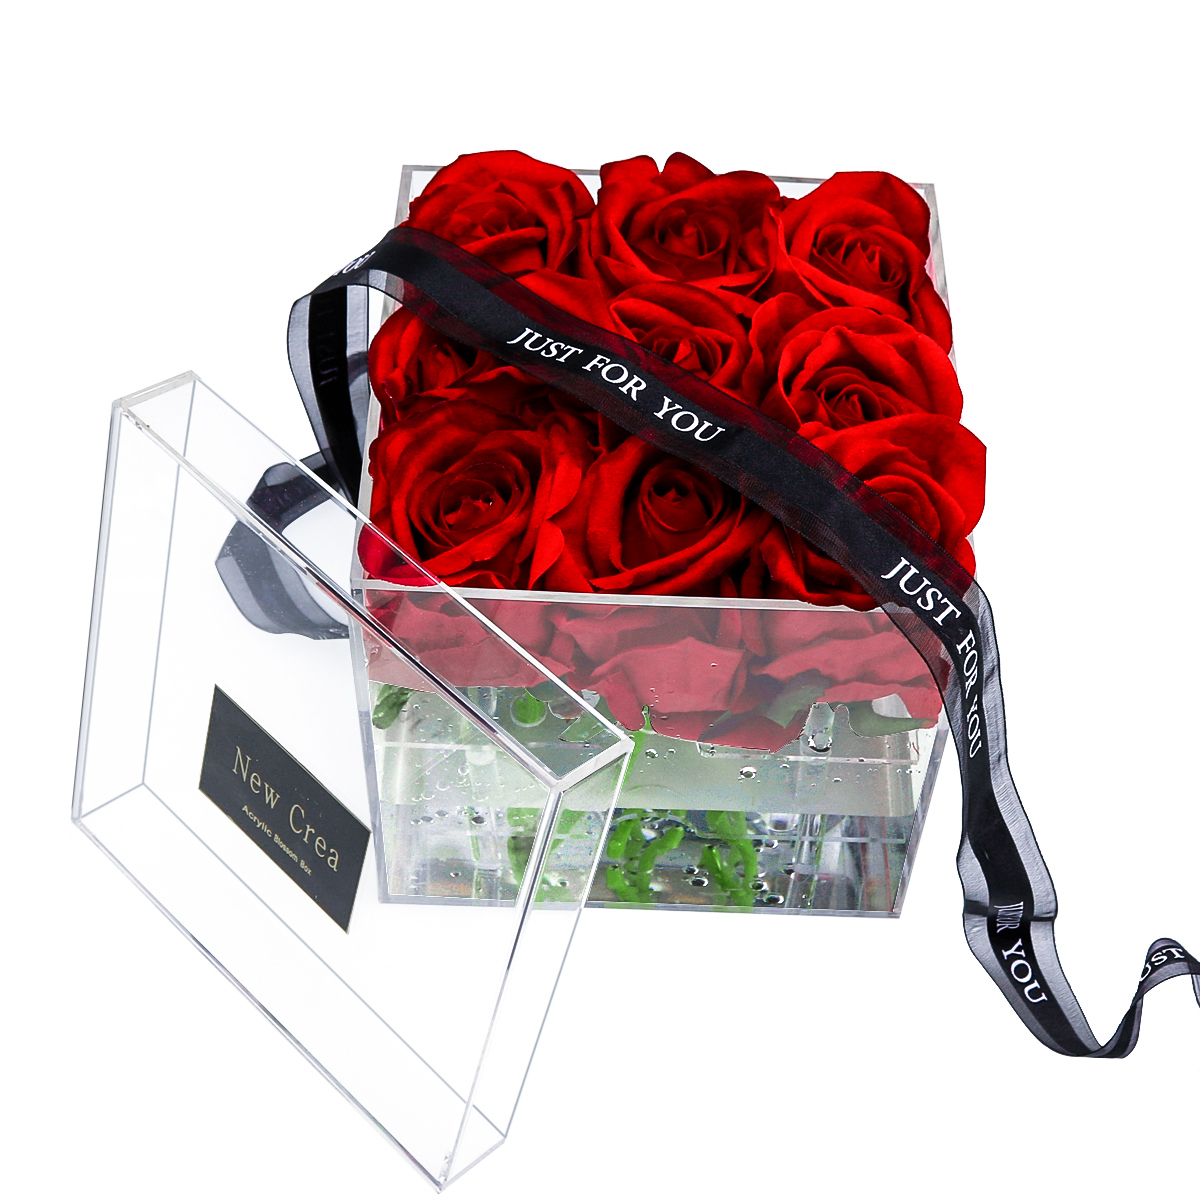 Acrylic Rose With Drawer Design Wholesale Acrylic Flower Box